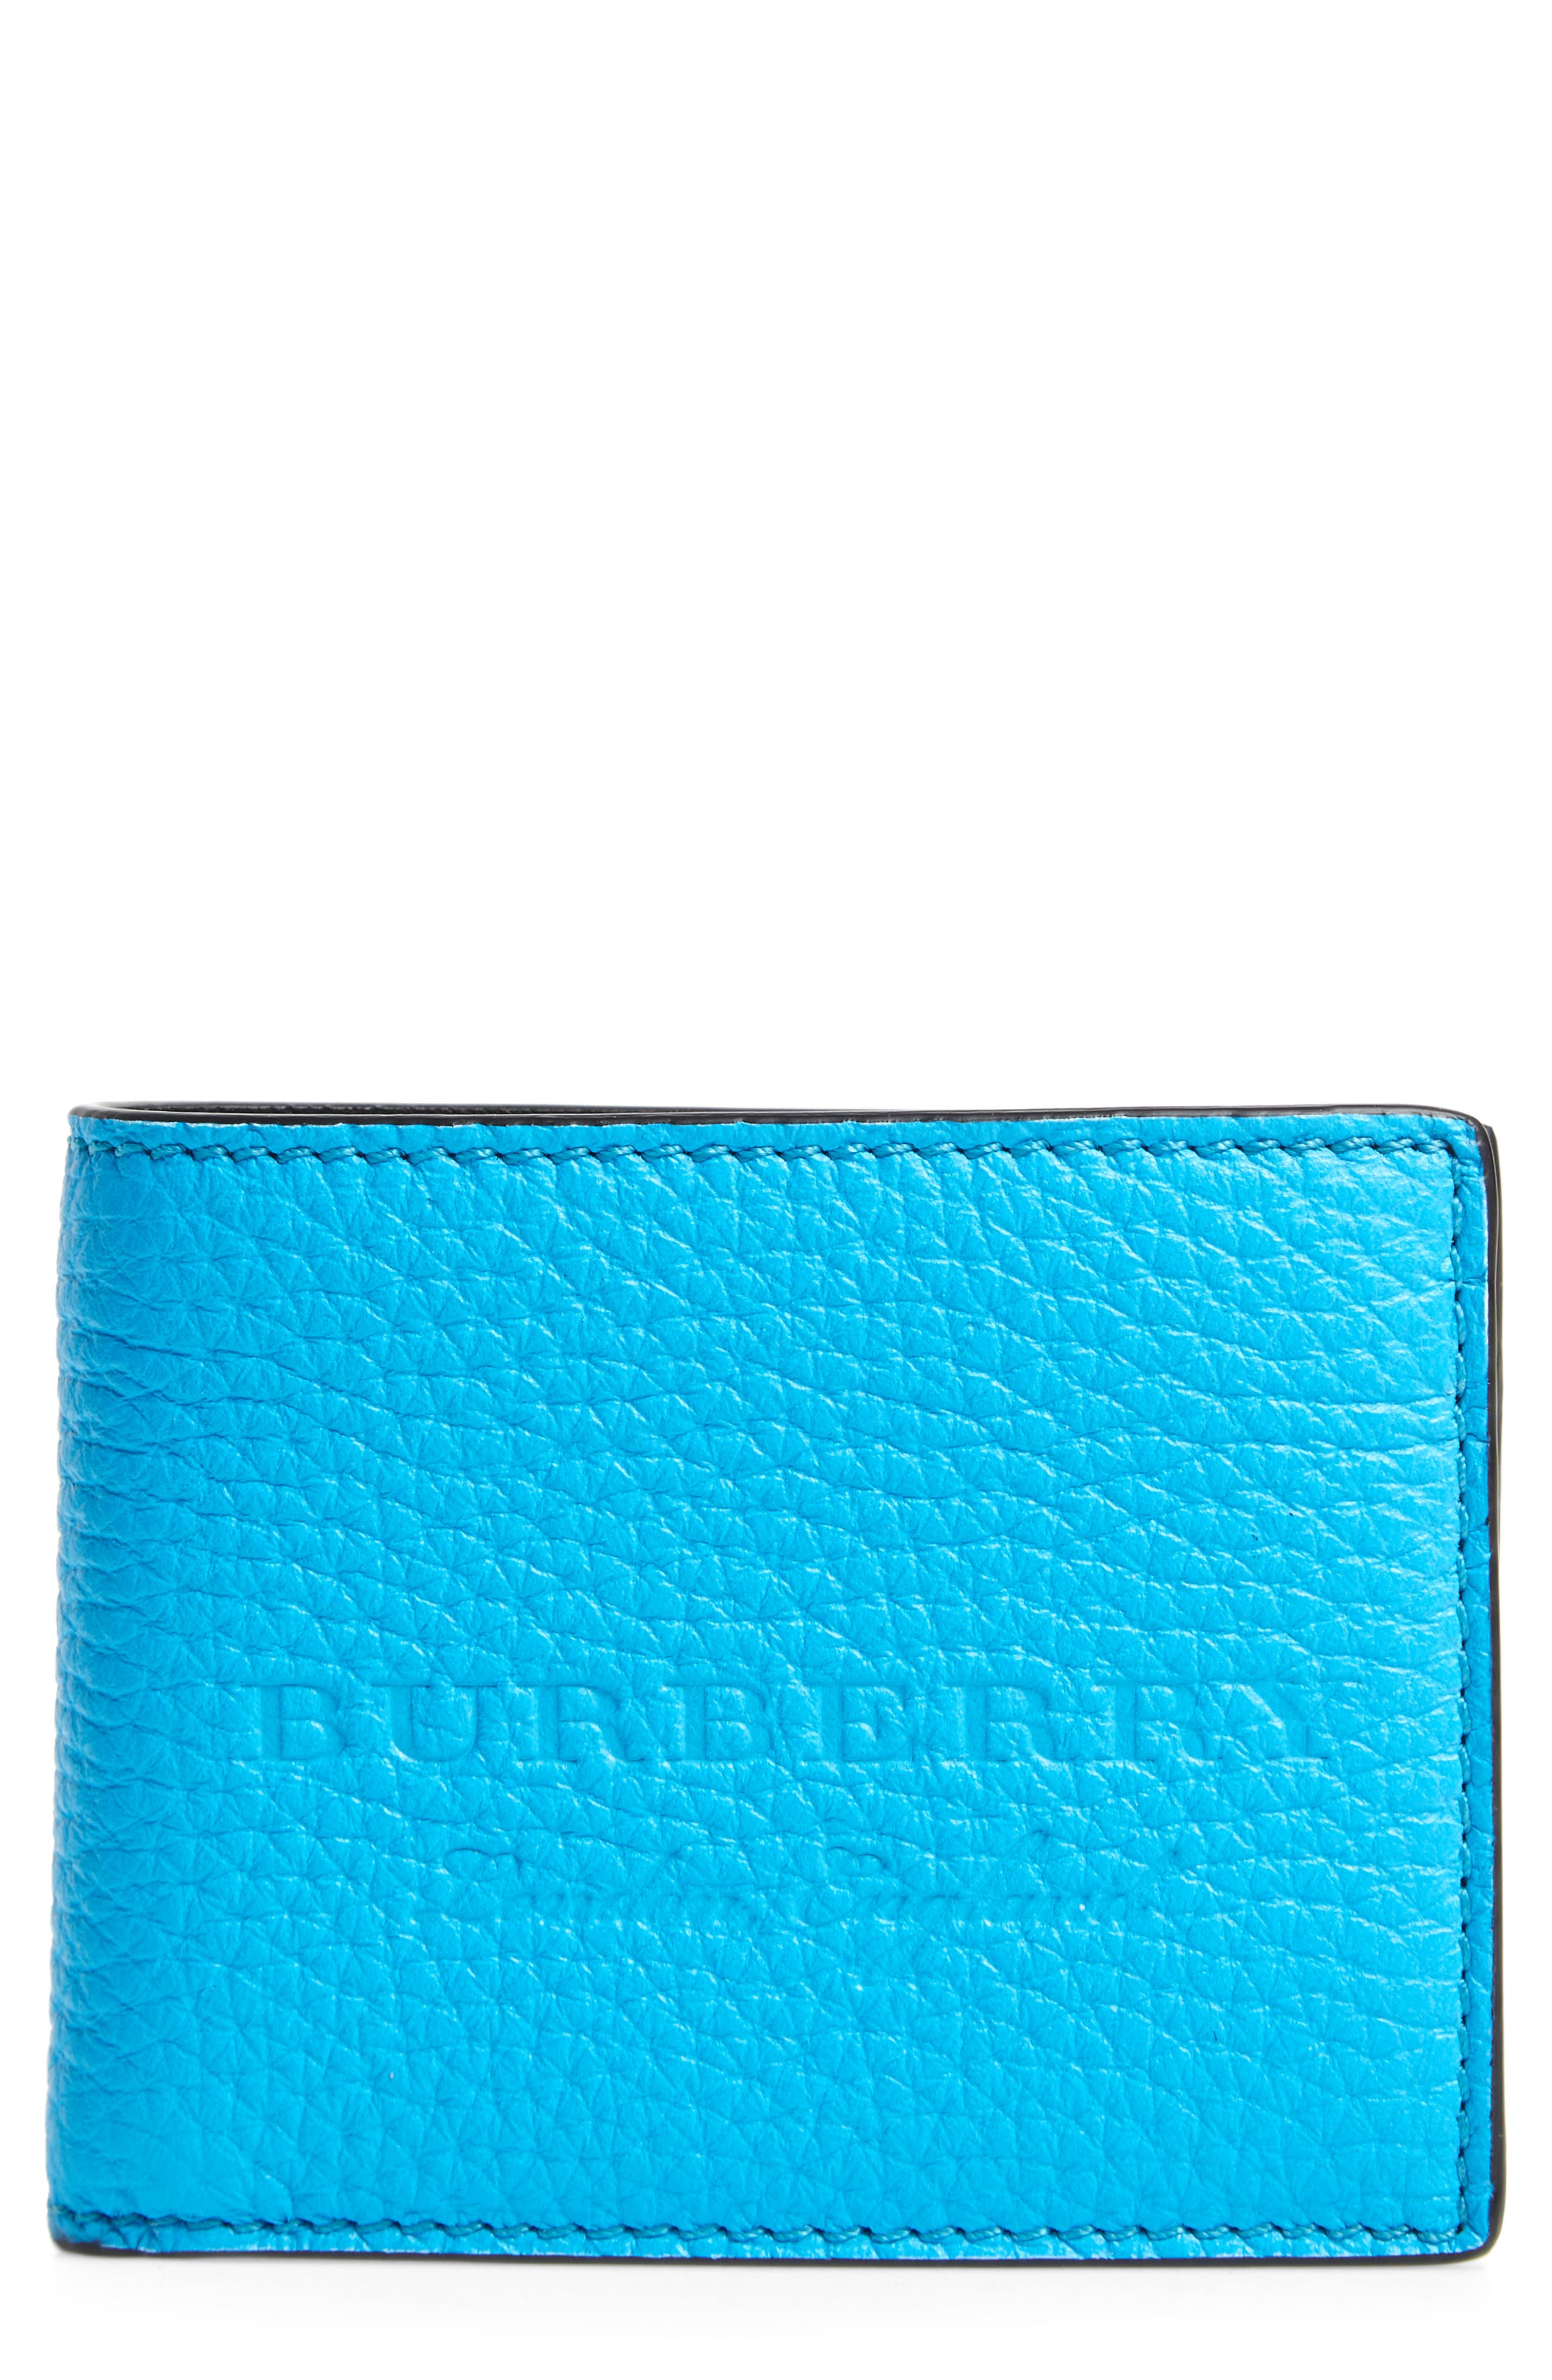 Leather Bifold Wallet,                             Main thumbnail 1, color,                             437